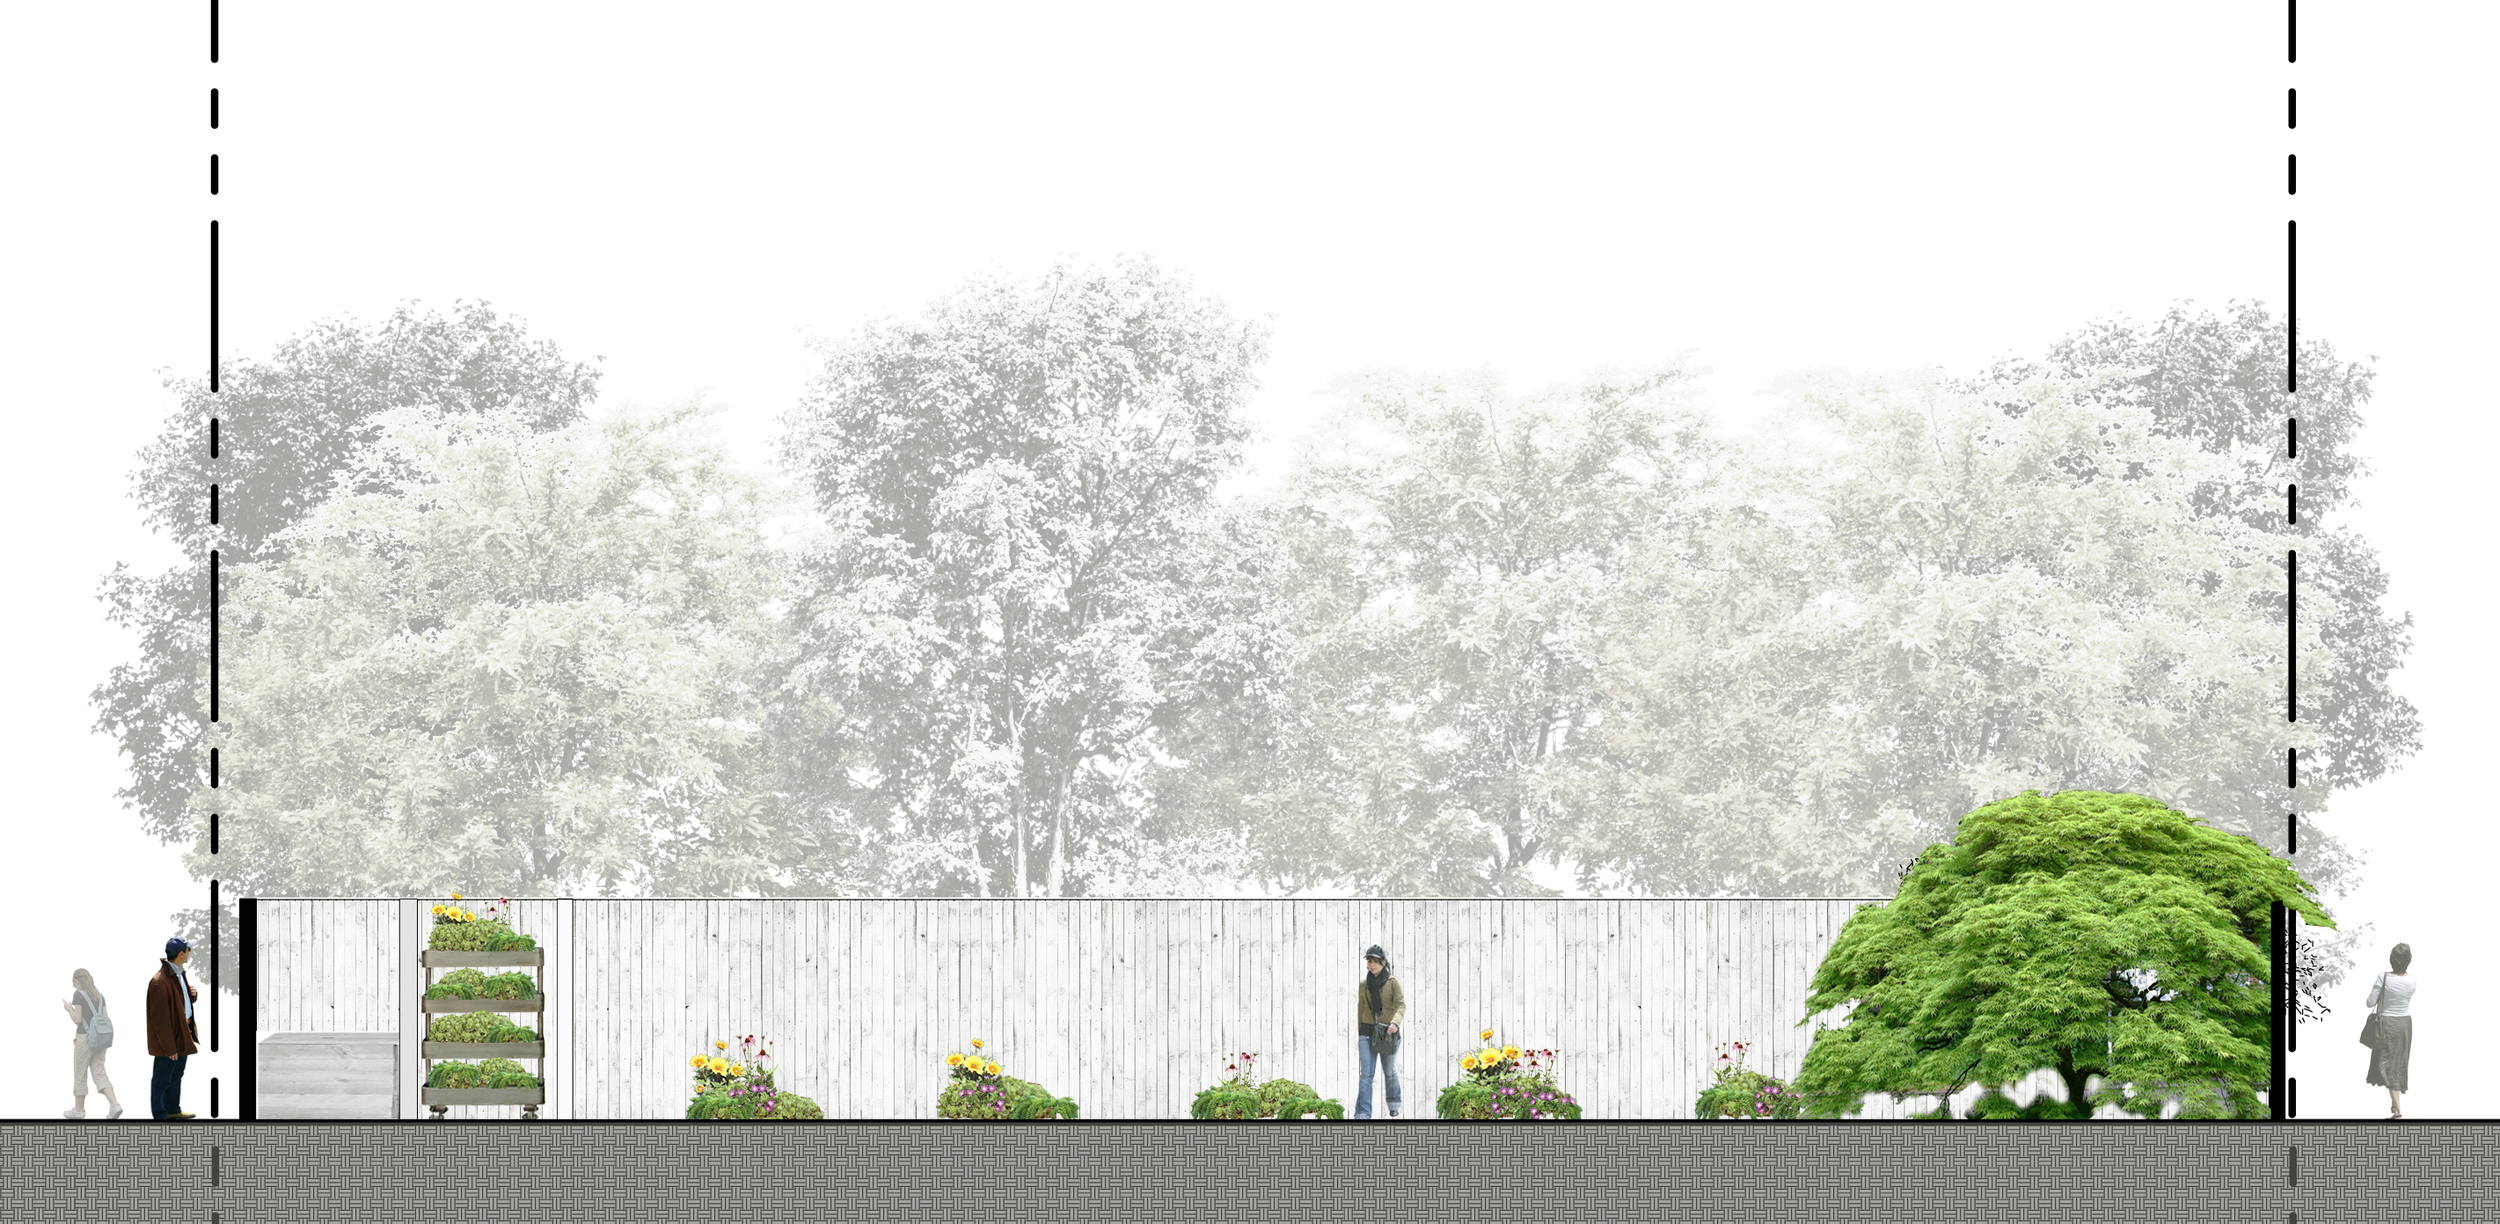 Project Location: Reford Gardens,Québec, Canada  Submission: November 2014  Renderings By: Moody Landscape Architecture